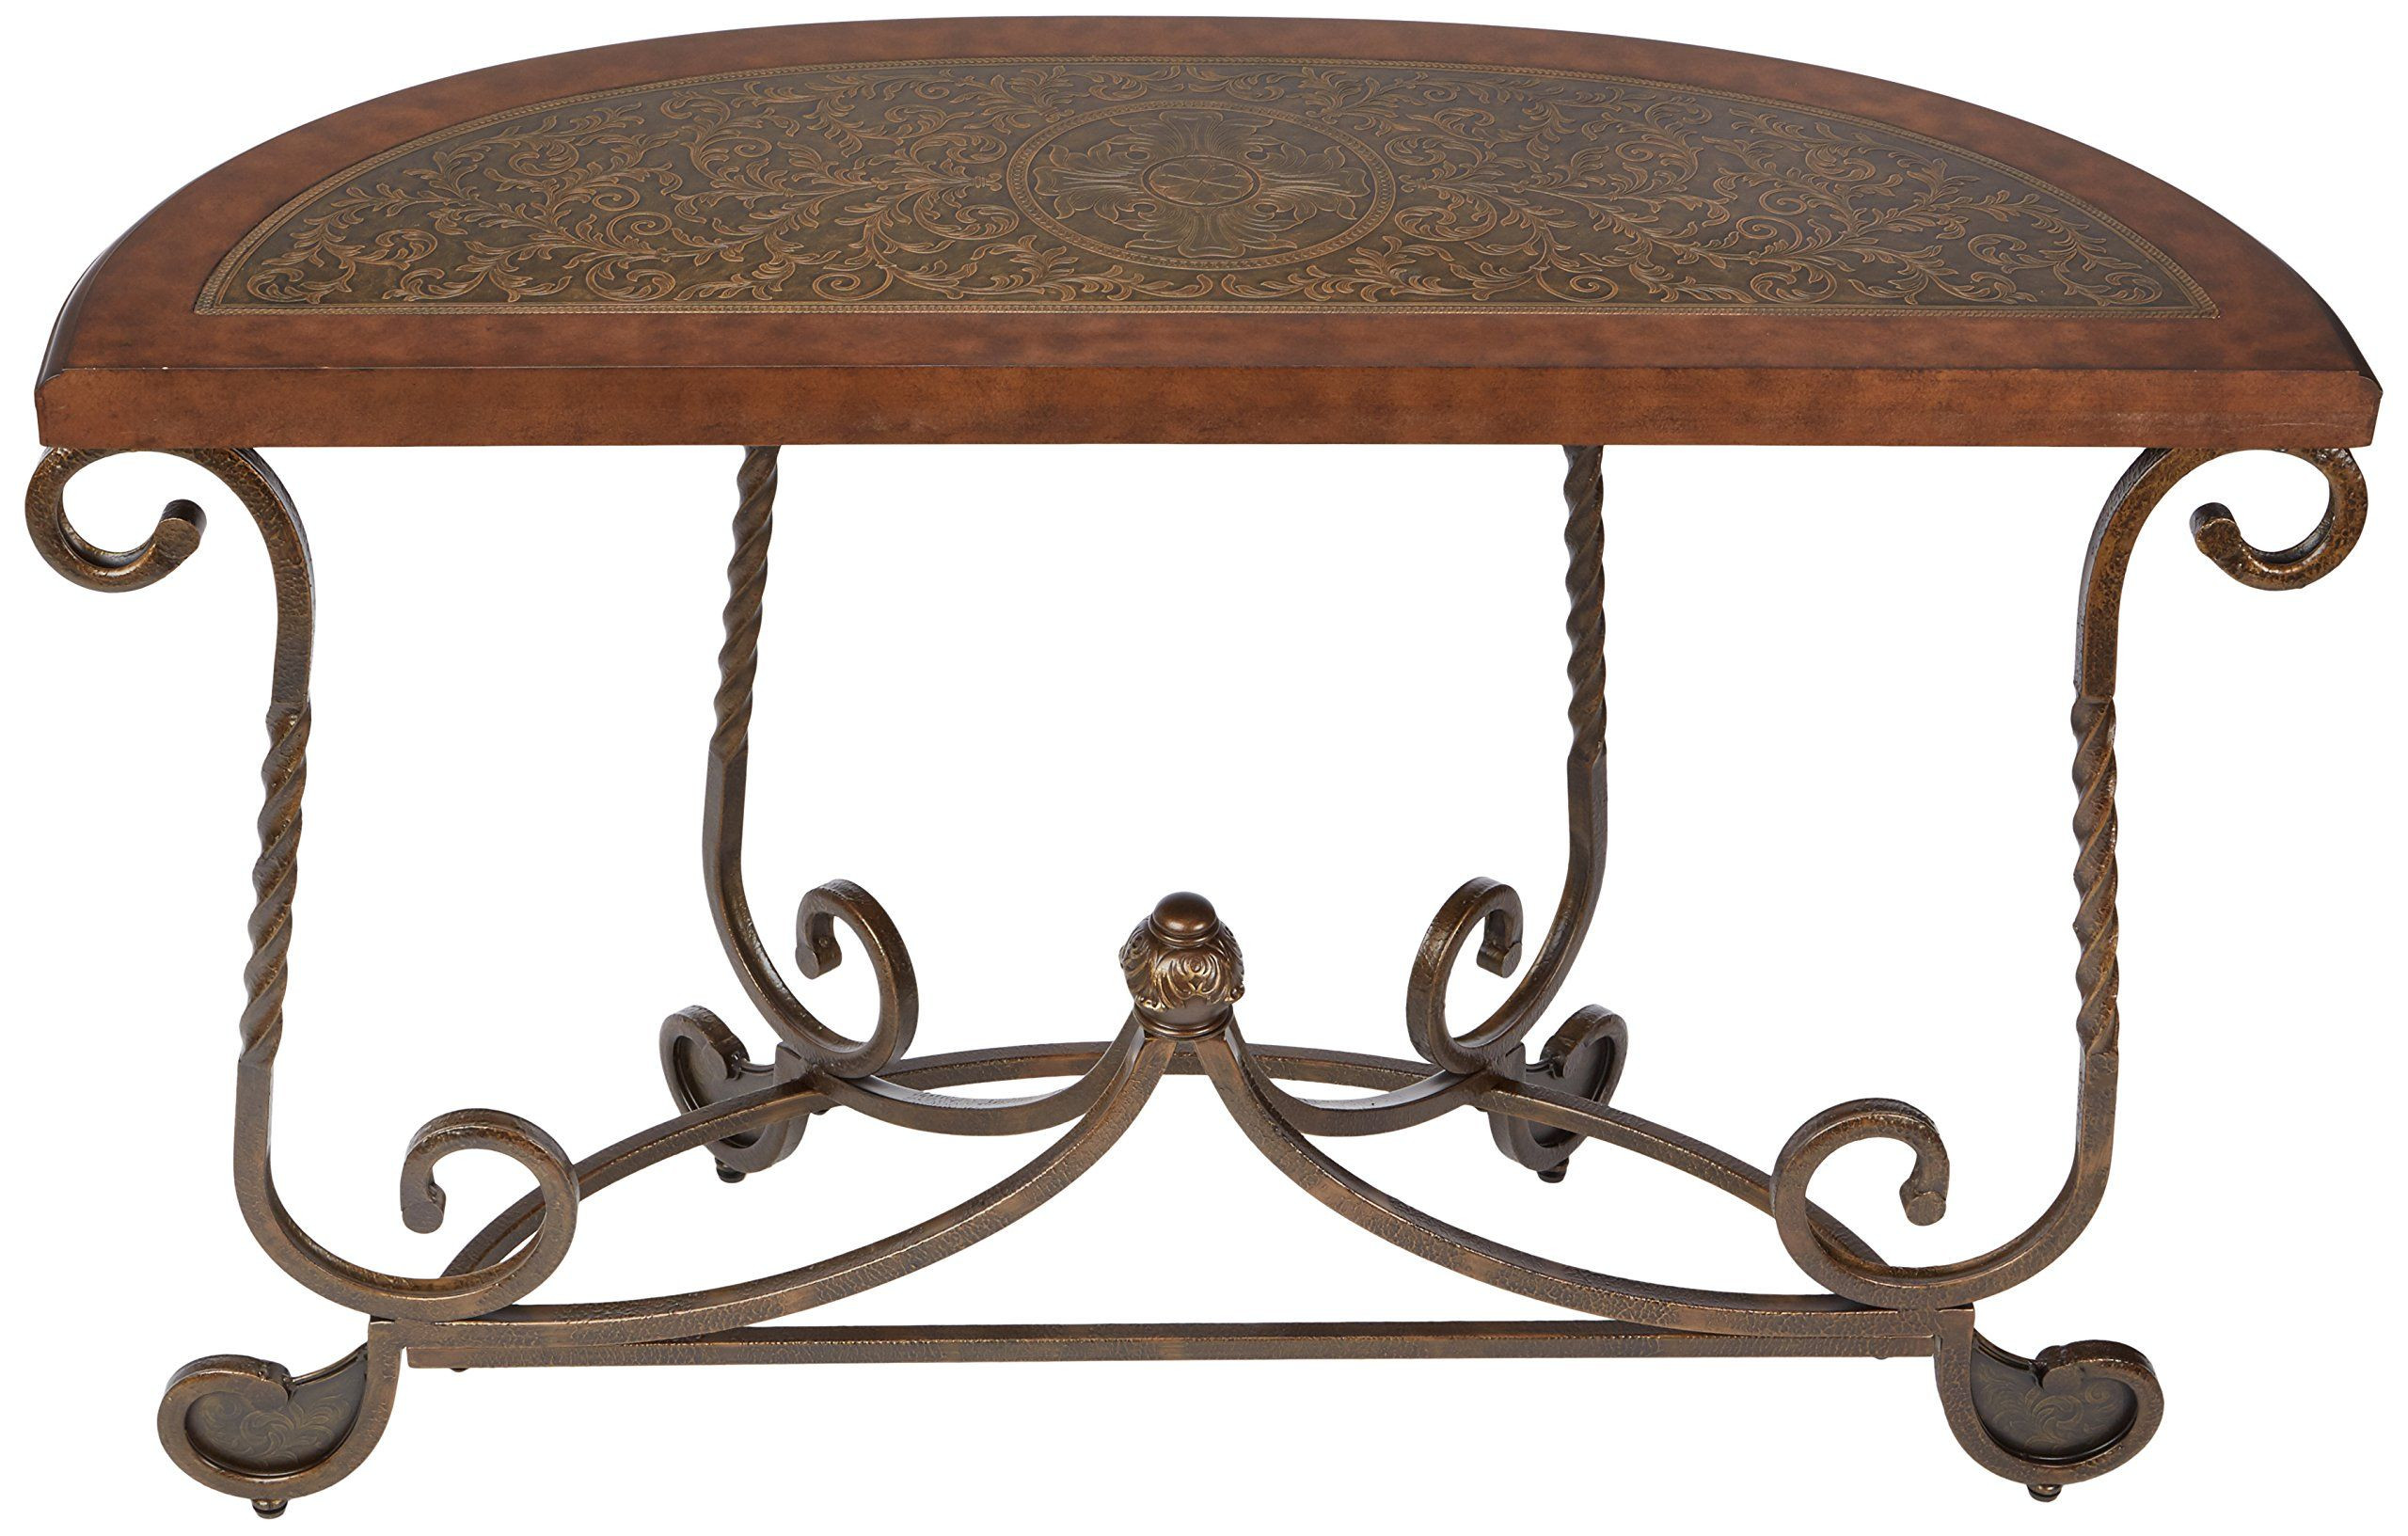 ashley furniture signature design rafferty sofa table traditional rh pinterest com Couch End Tables North Shore Sofa Collection